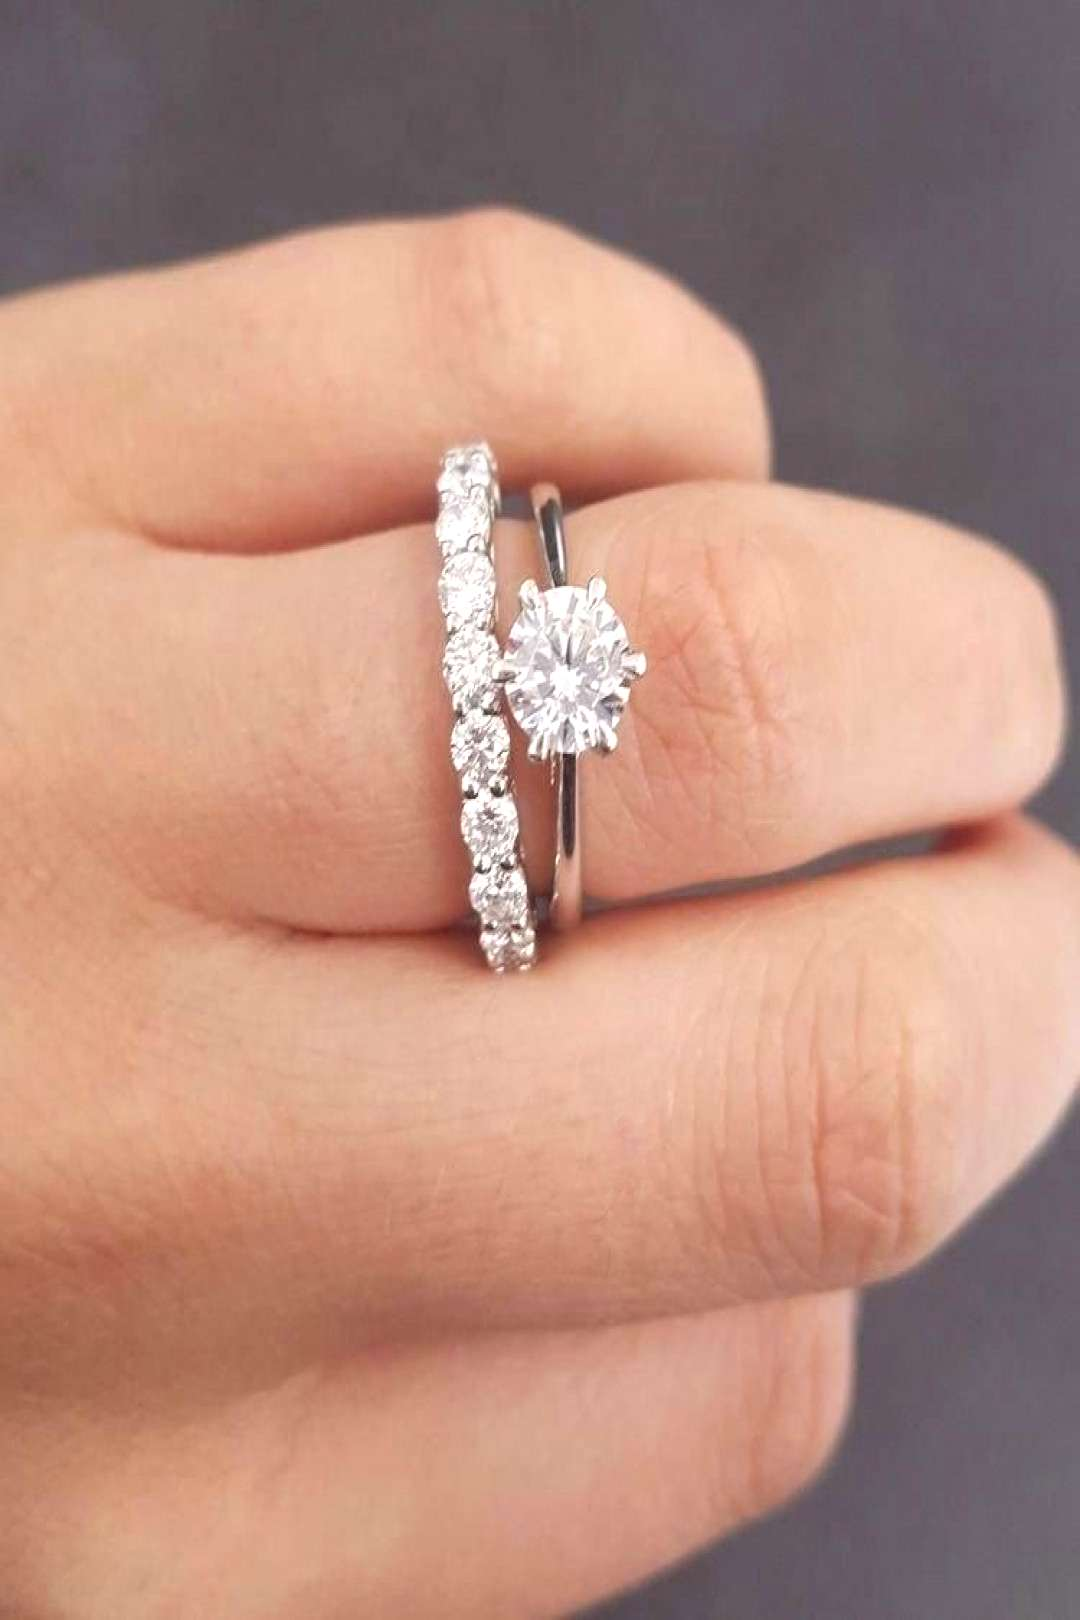 Solitair Classic Six Prong With Half Eternity Wedding Band 925 Silver Ring set# Diyajewels812 on e